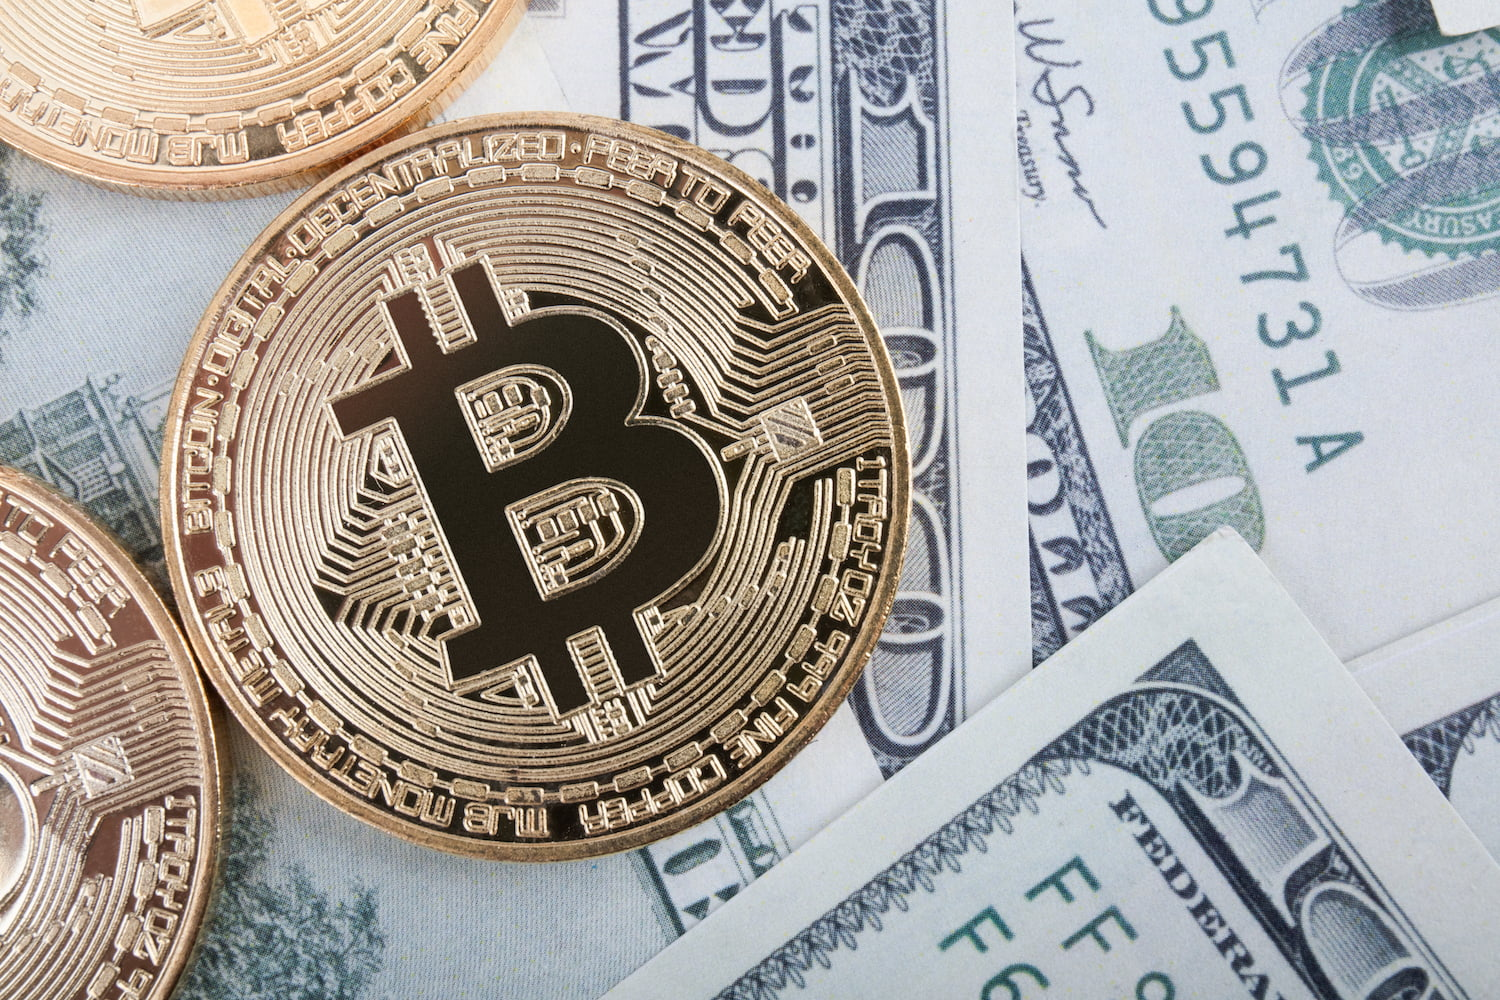 Up 33% - Bitcoin's Price Just Had Its Best Month of 2018